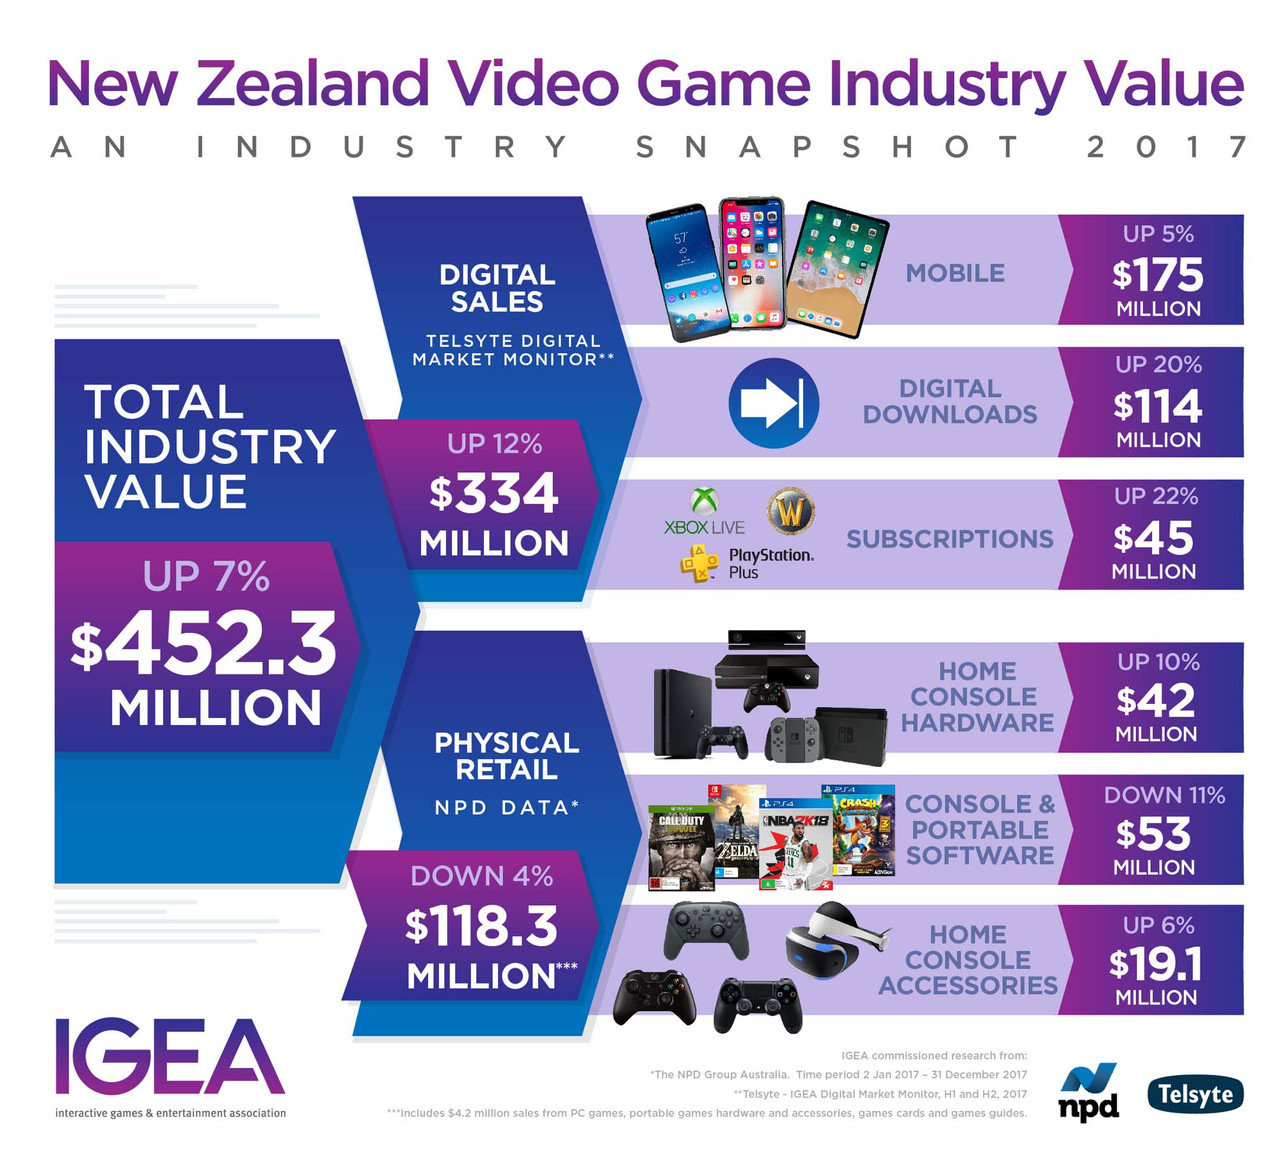 Kiwis spent $450m on games last year